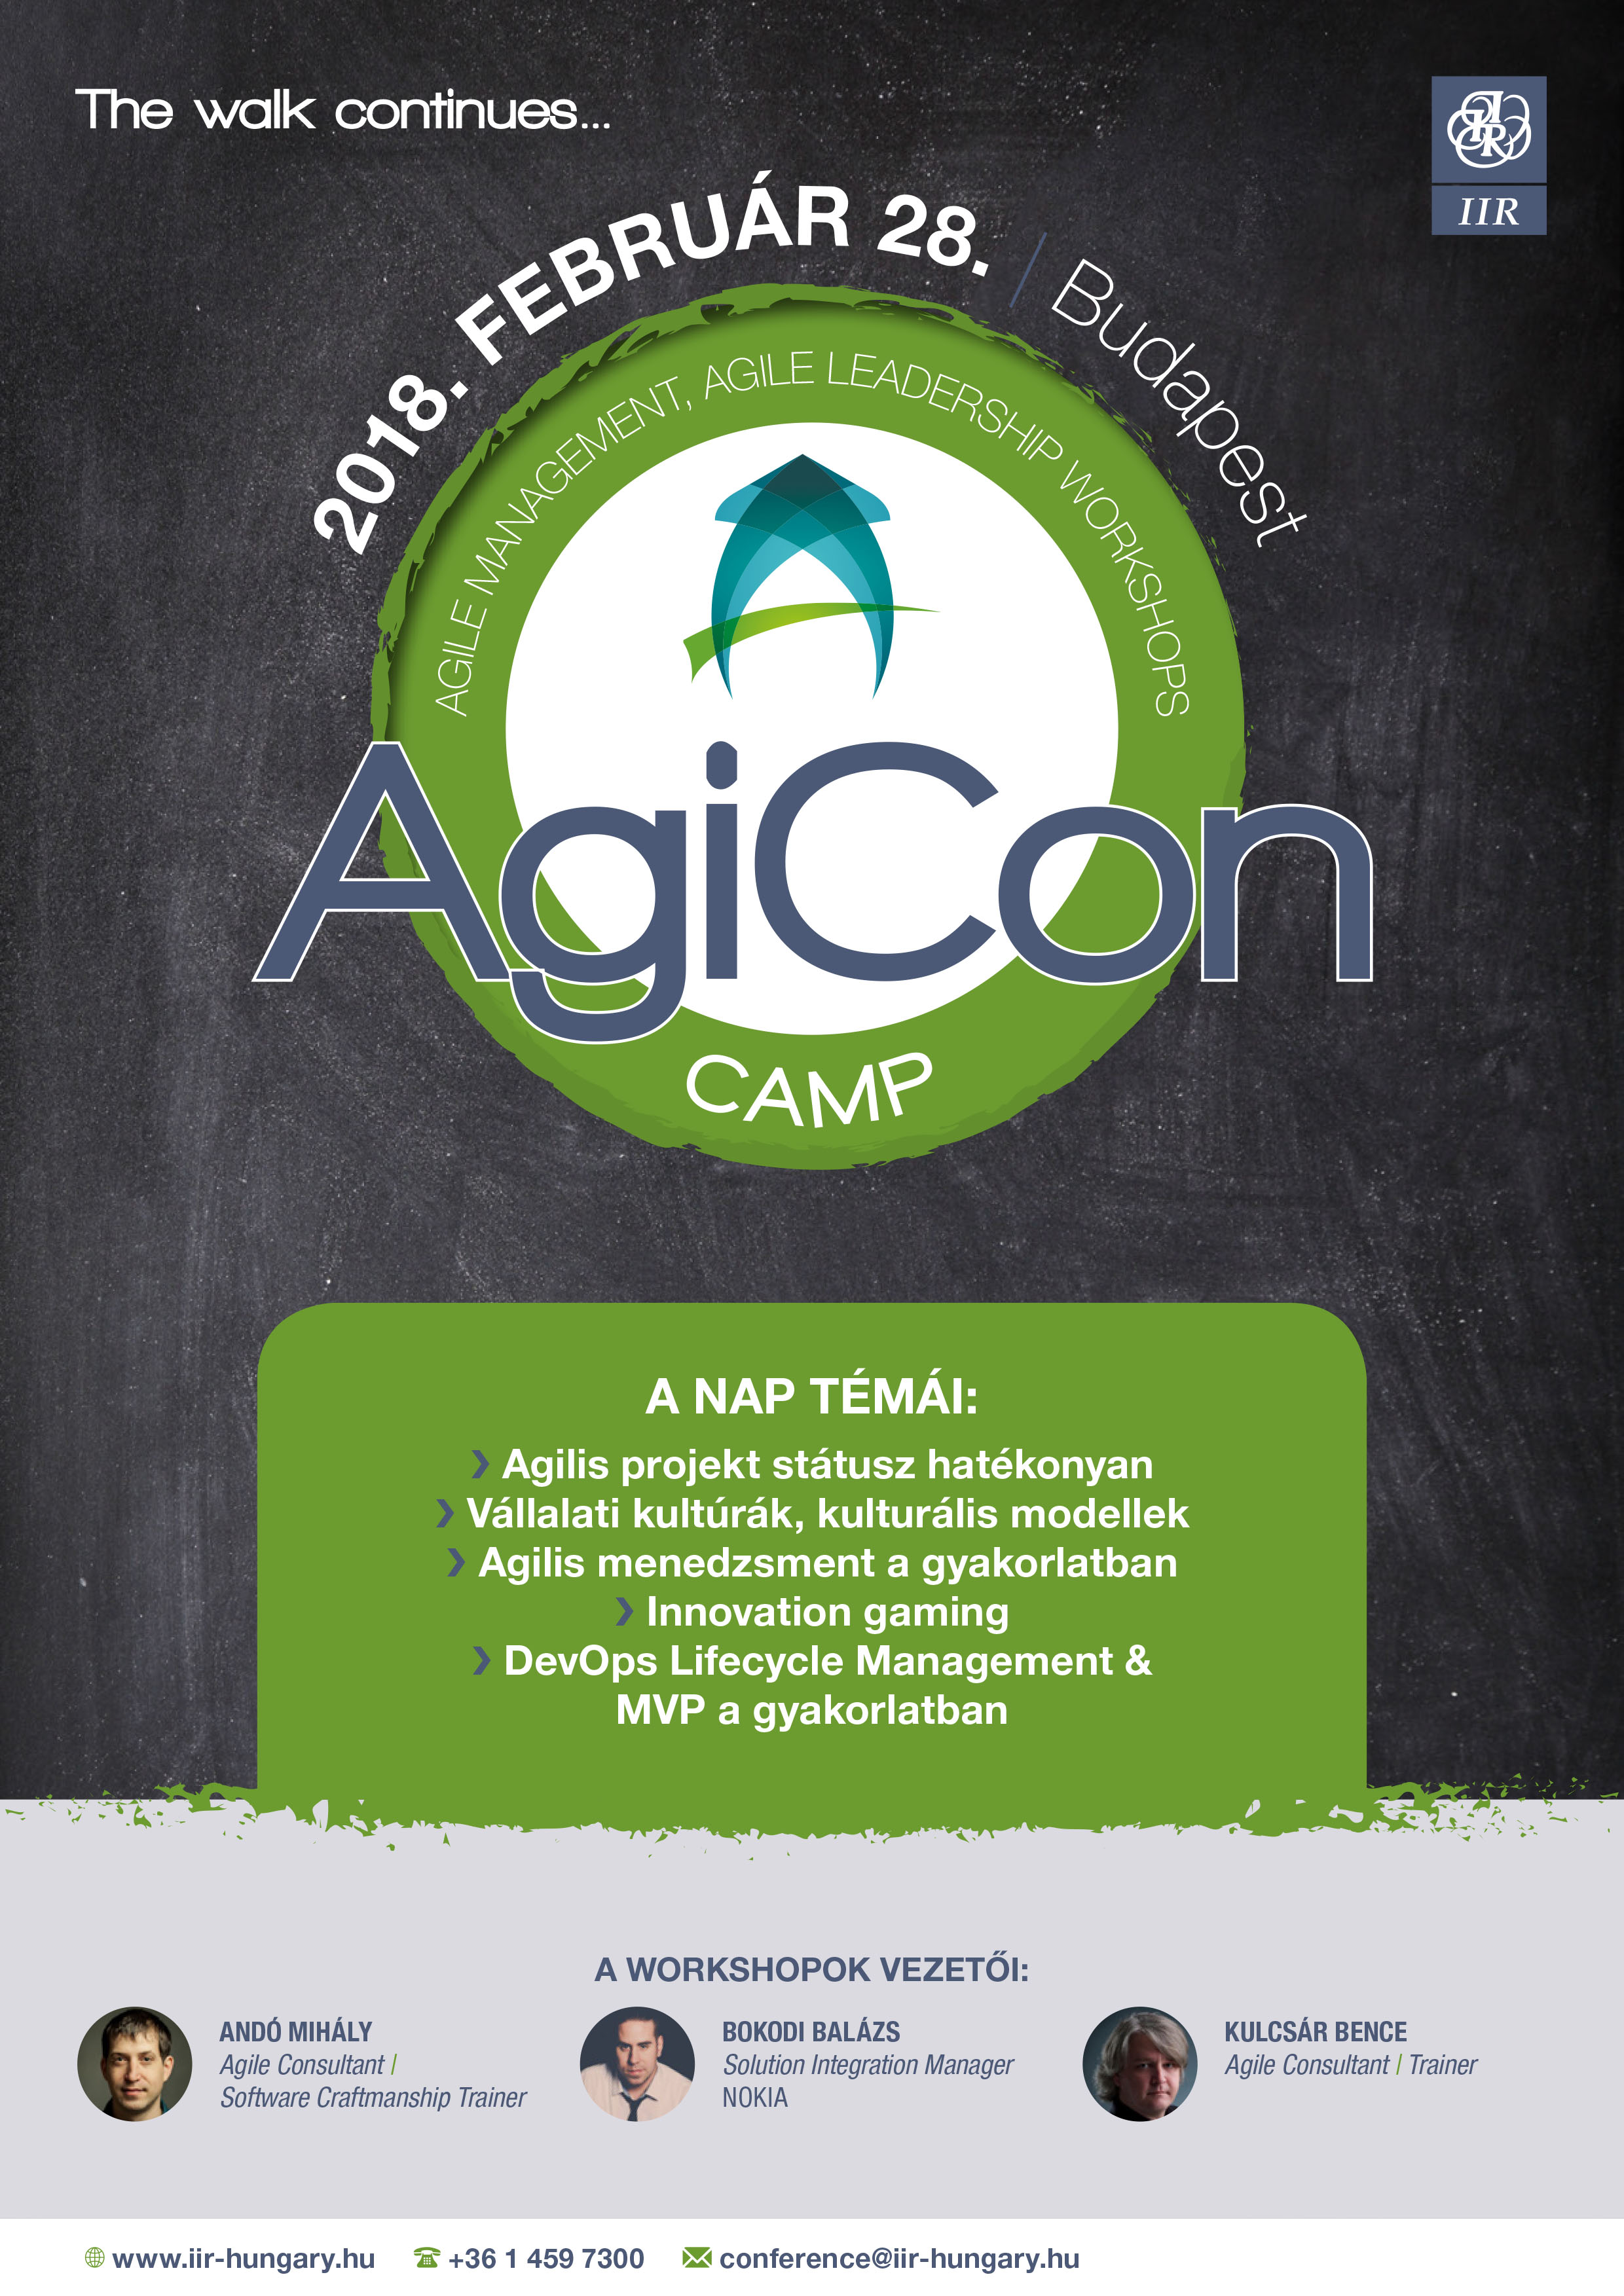 AgiCon Camp